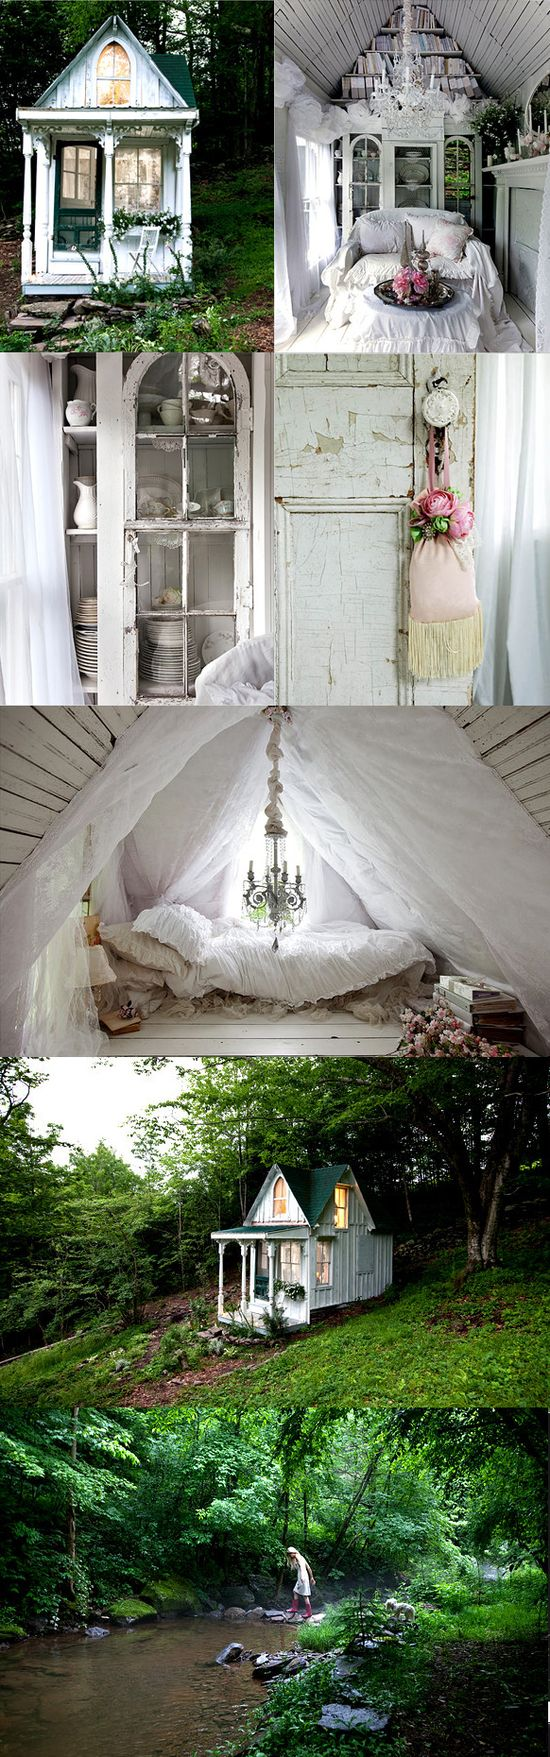 I would love this...except, where's the bathroom?